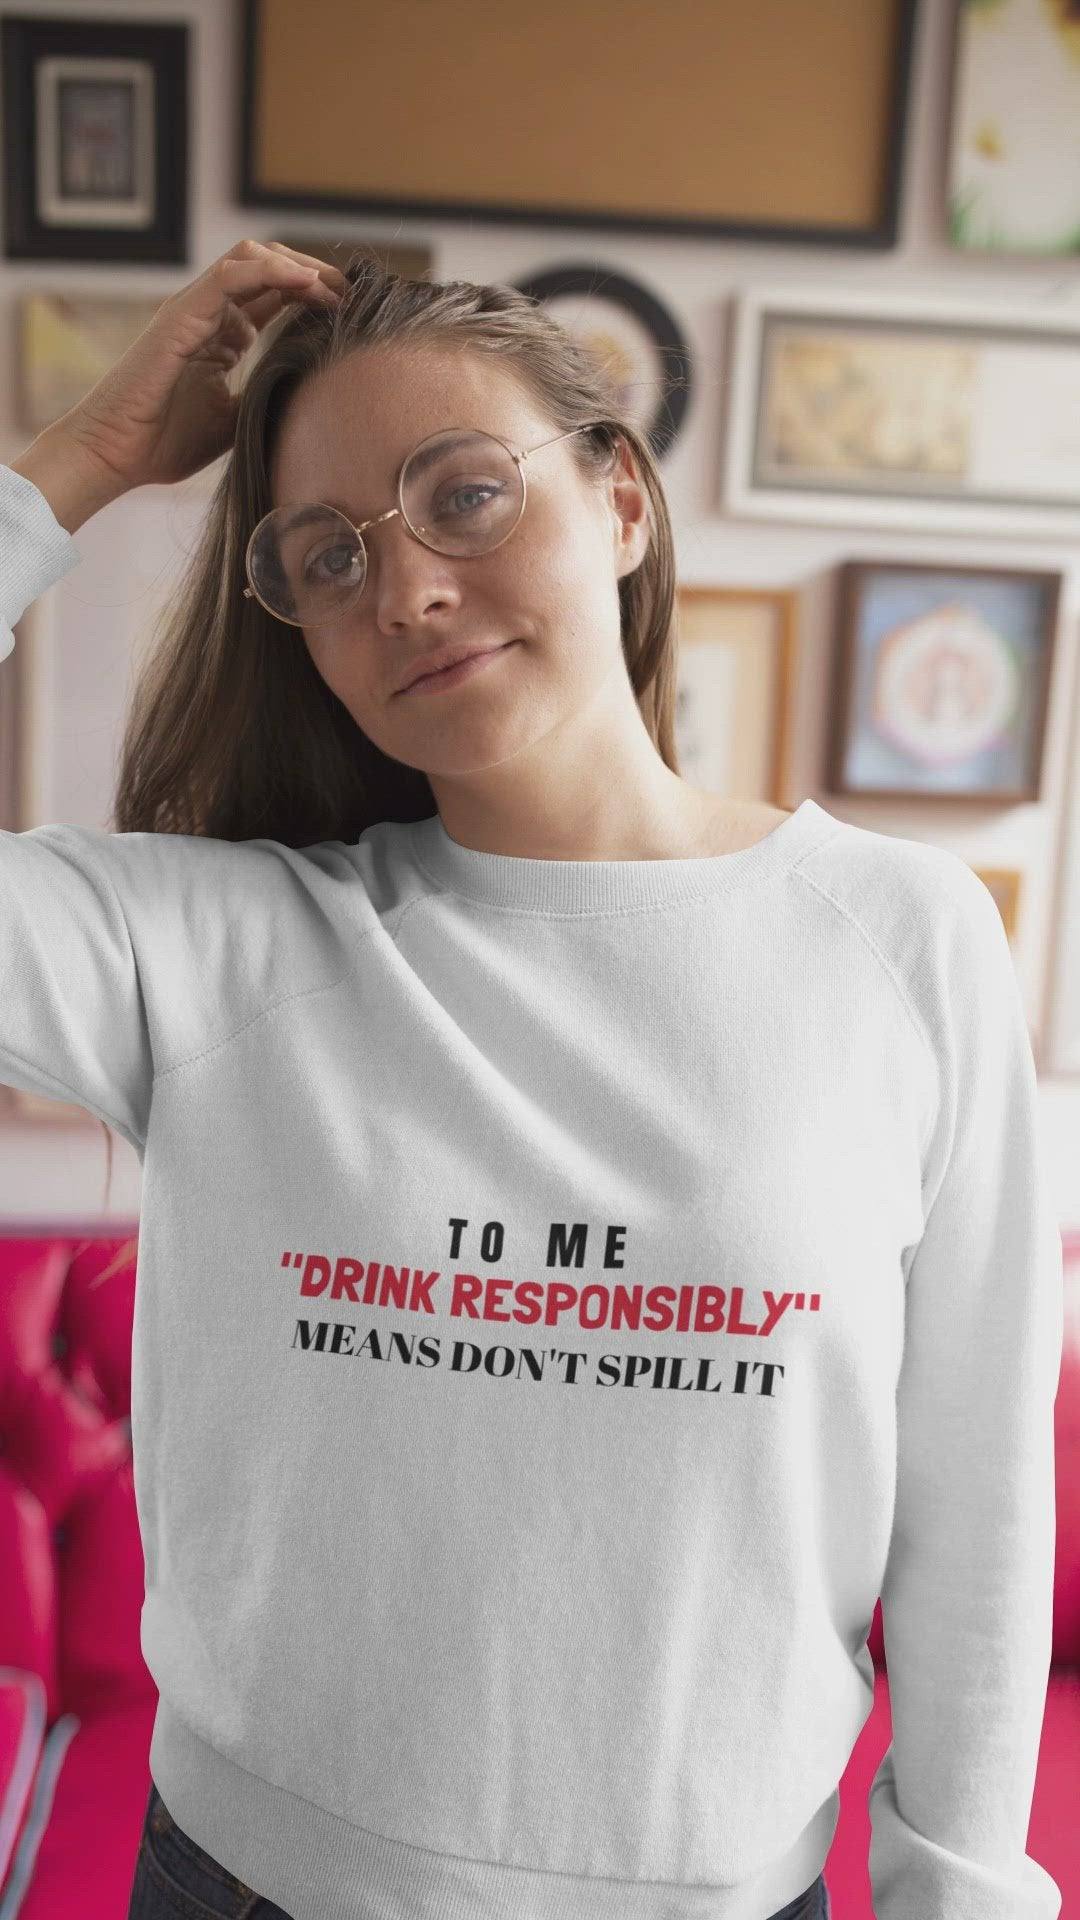 """TO ME DRINK RESPONSIBLY"" MEANS DON'T SPILL IT"" - Unisex Jersey Long Sleeve Tee"